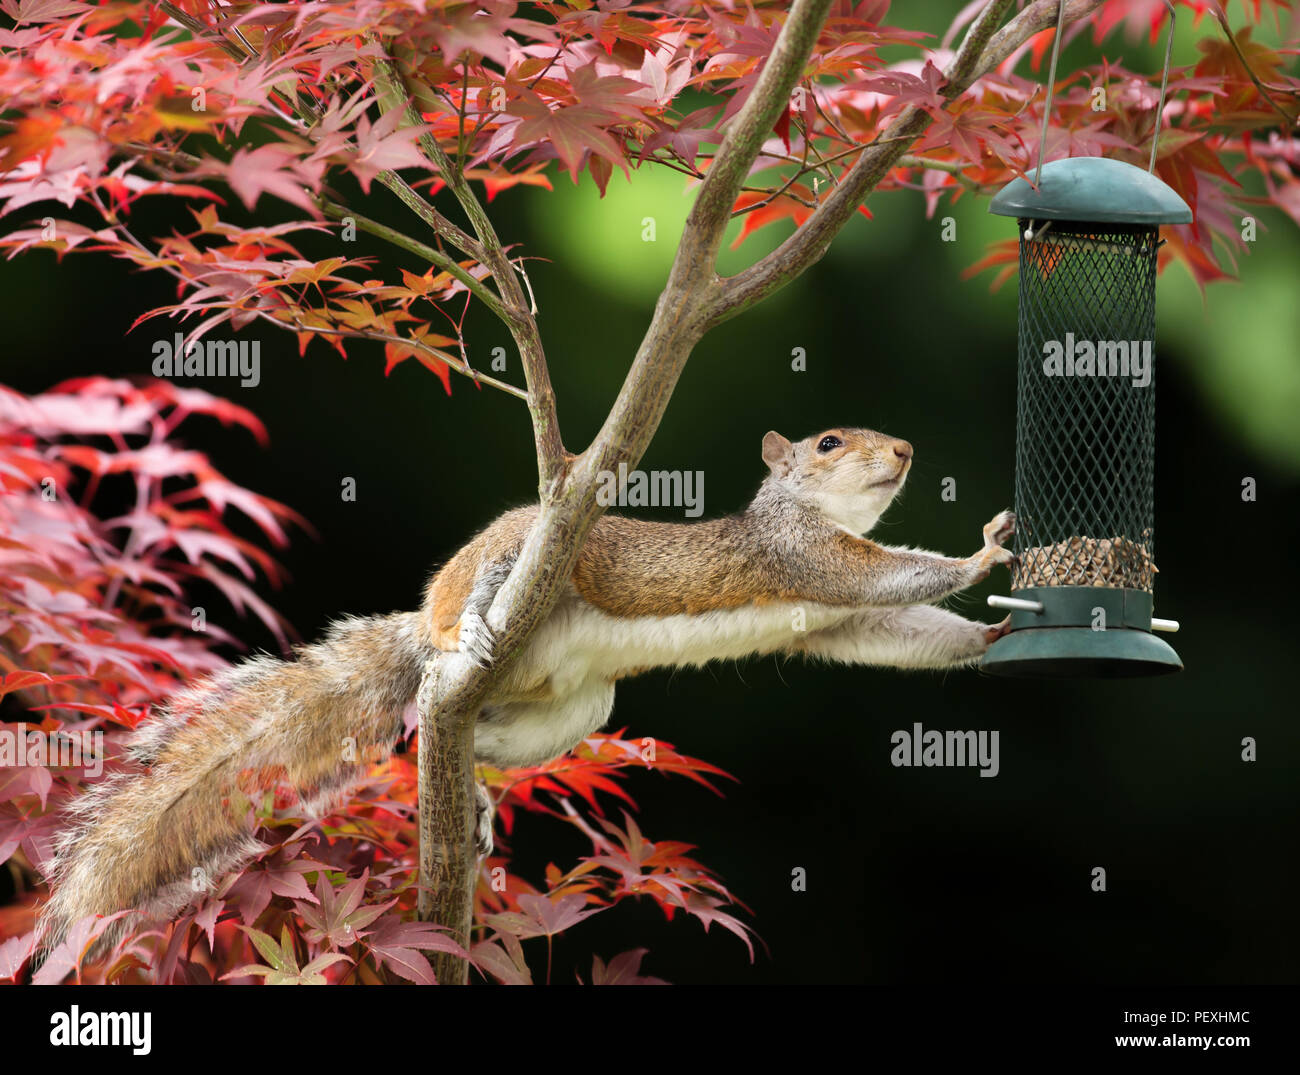 Close-up of a Grey Squirrel eating from a bird feeder on a colorful Japanese Maple tree - Stock Image